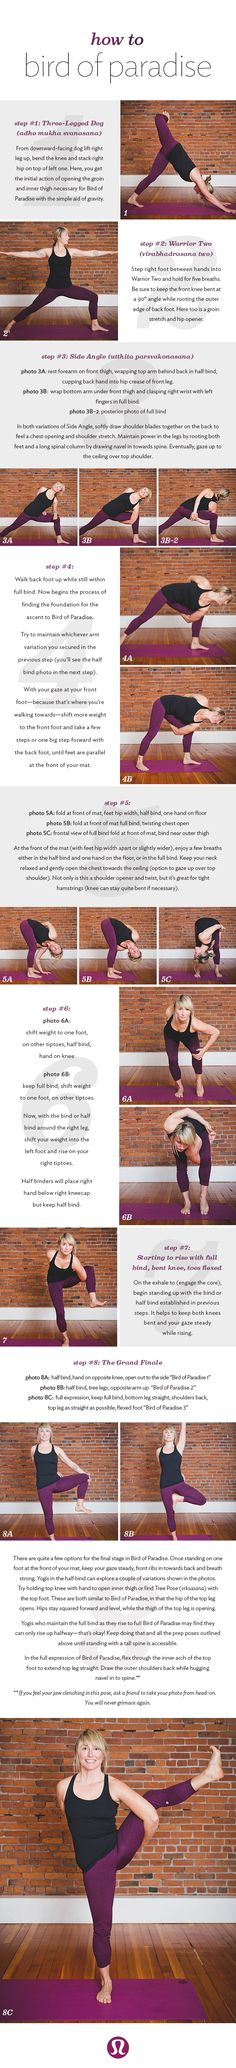 how to bird of paradise in 8 steps - lululemon blog // I love it when a teacher has this in their sequence. So fun:)